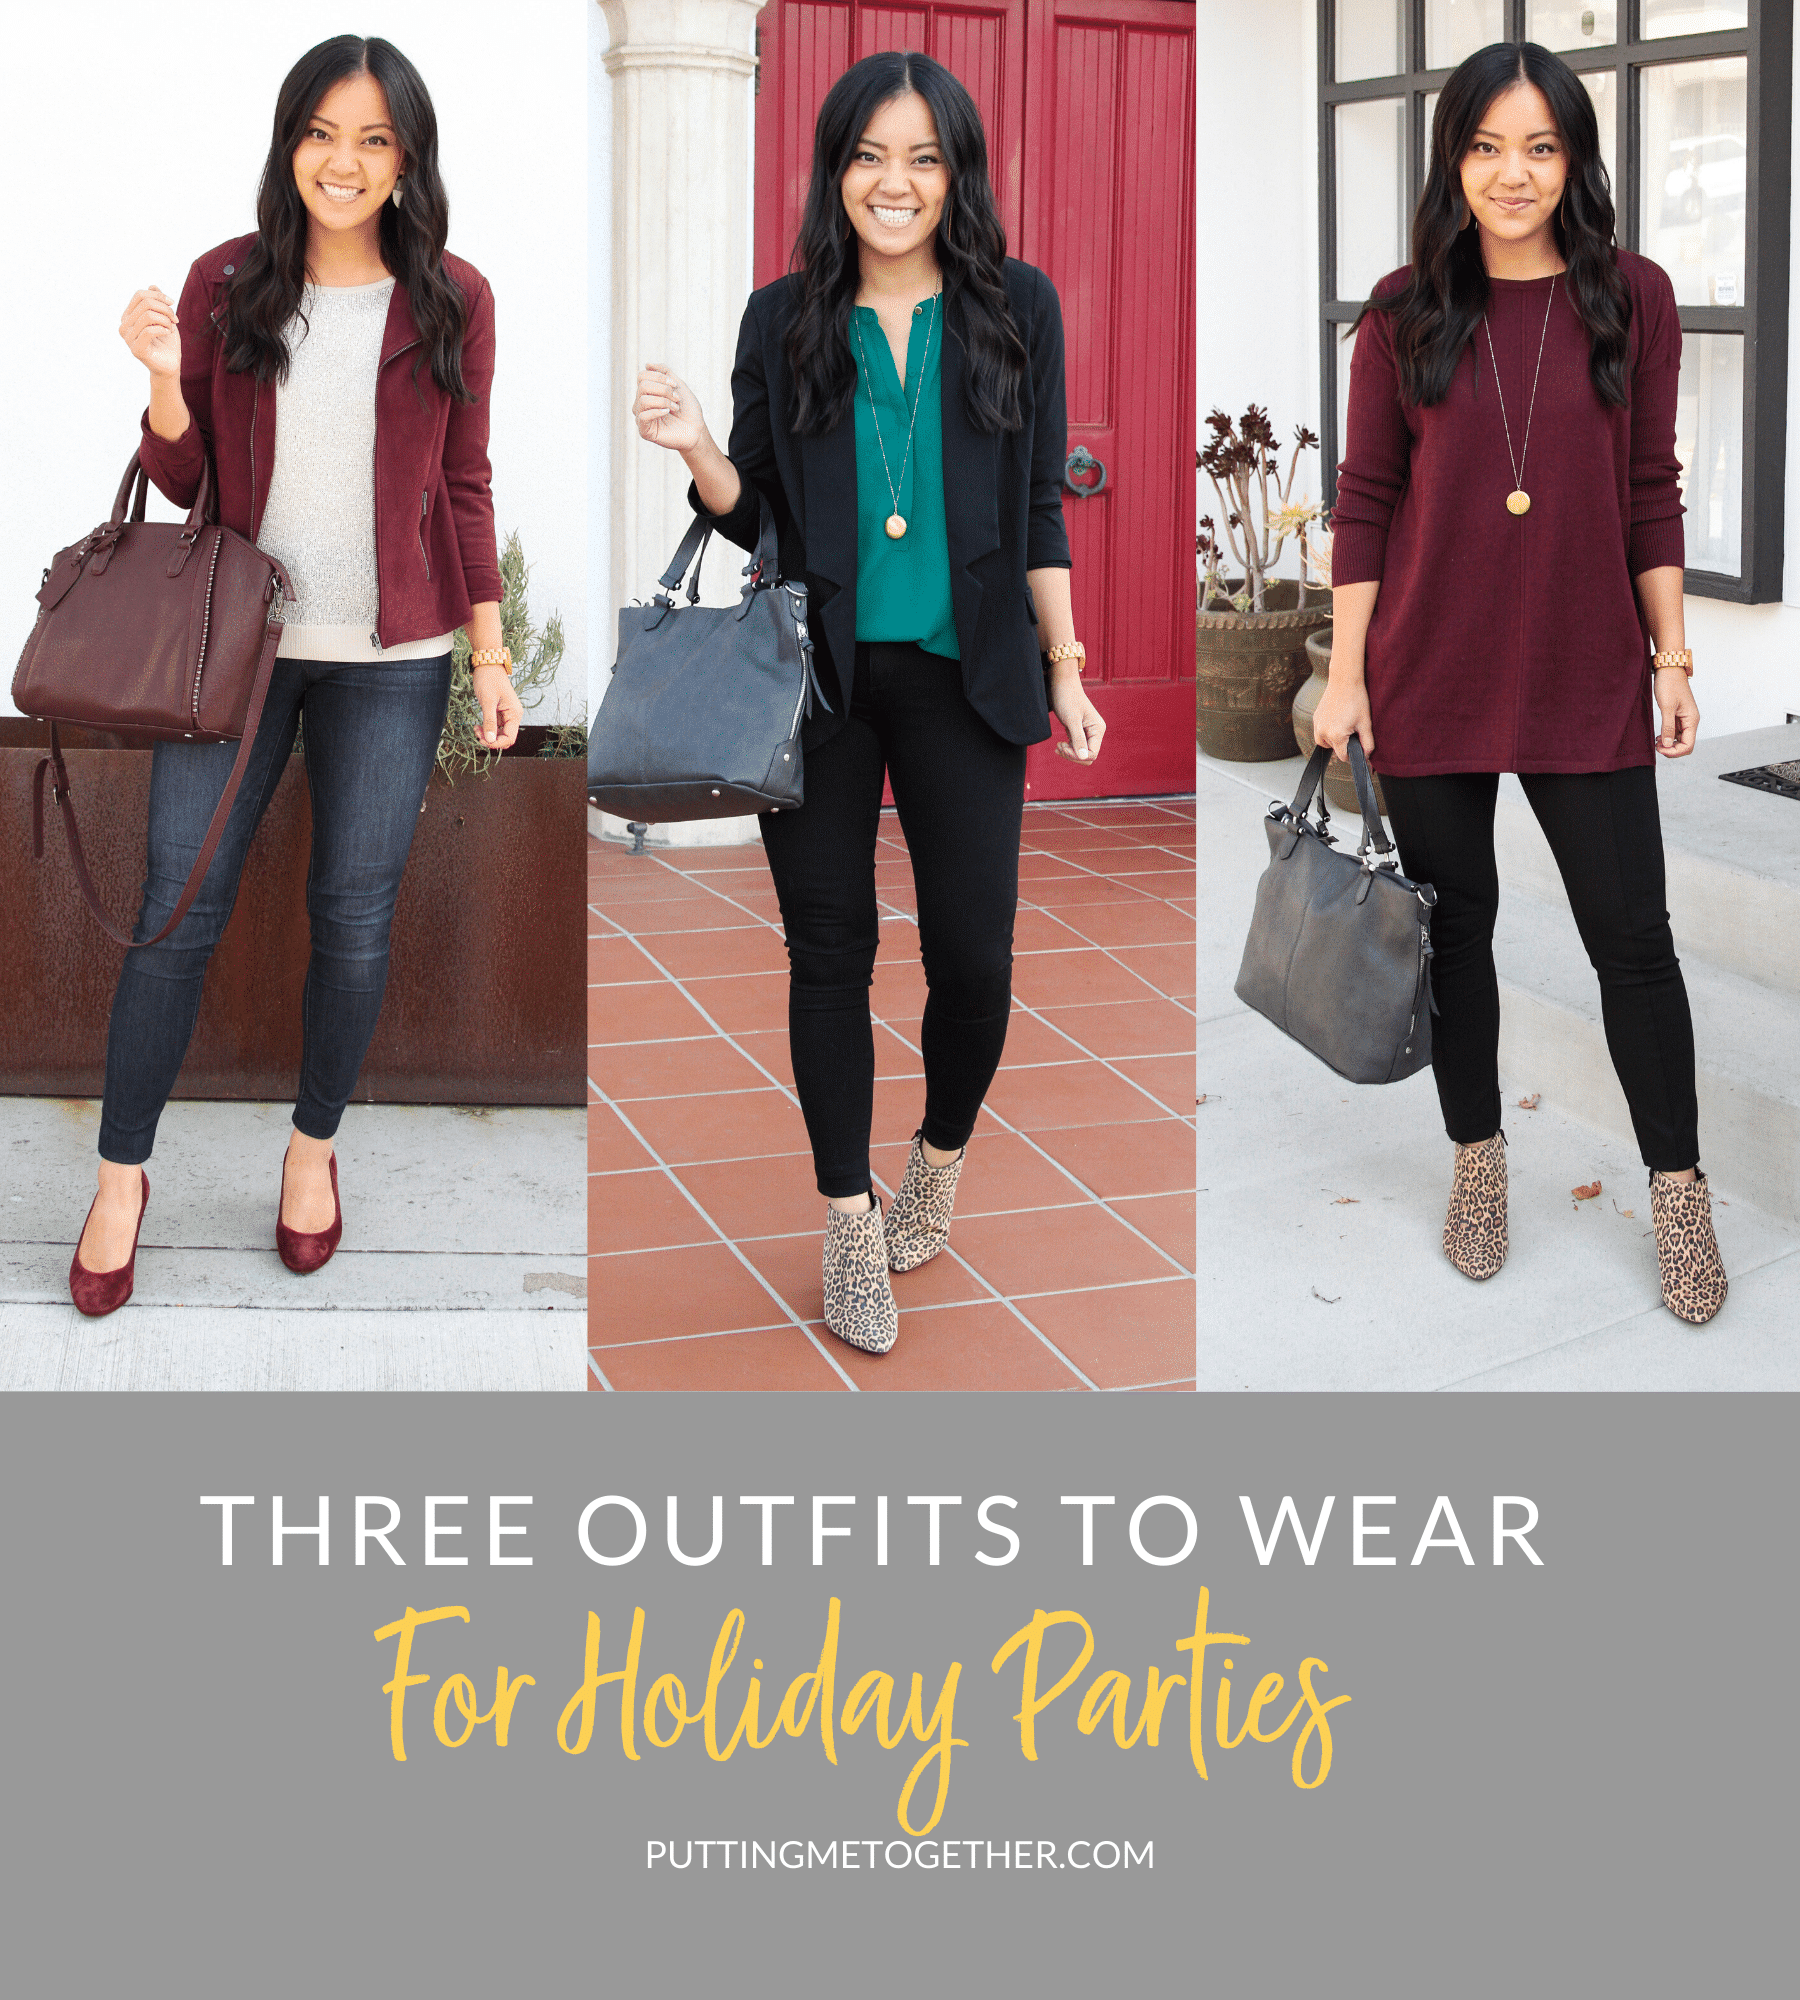 3 Outfits for Holiday Parties